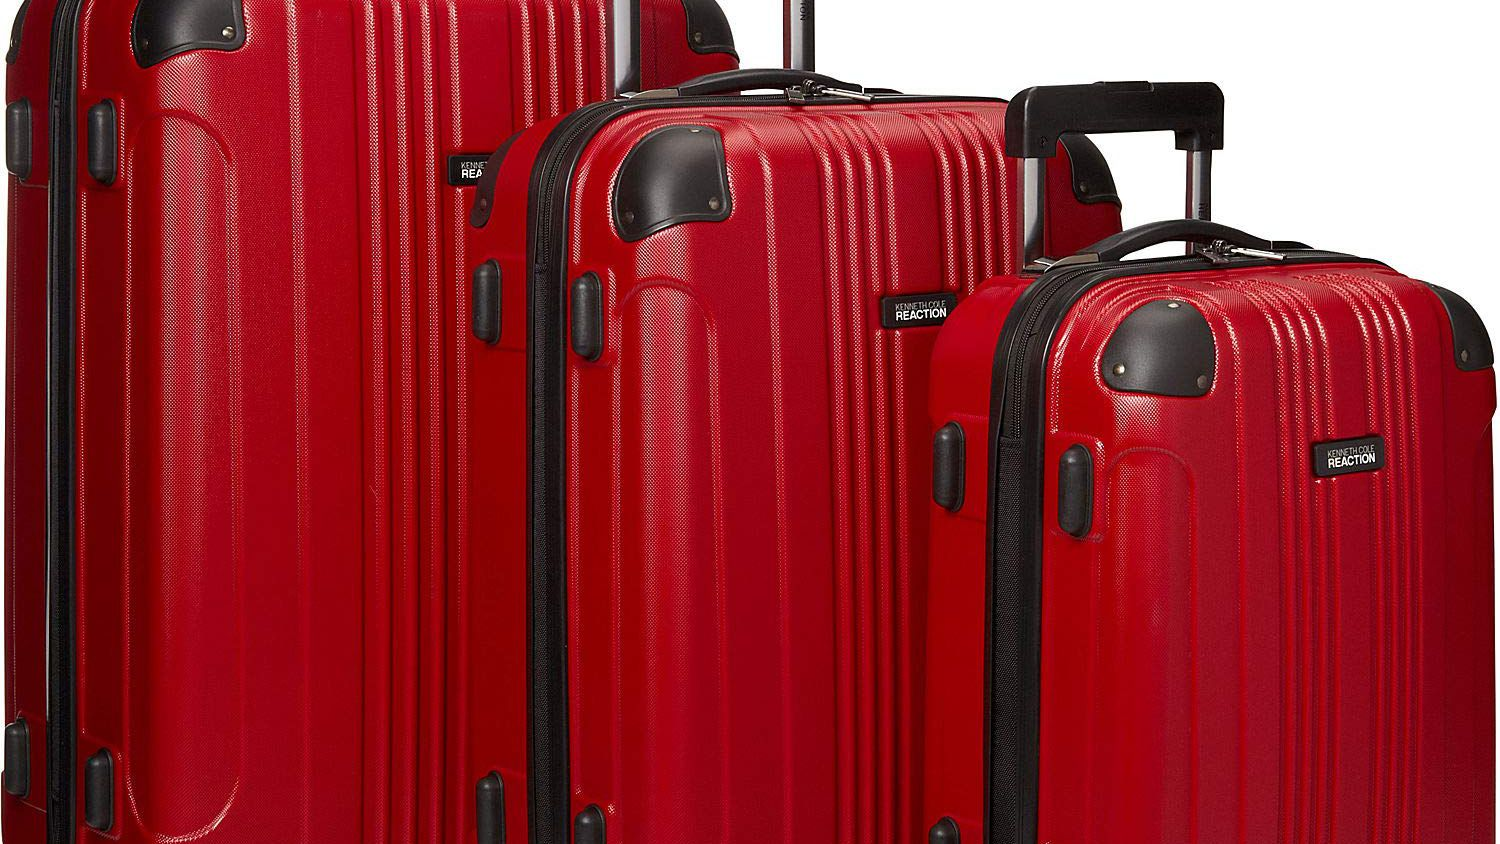 f7f261f5a The 8 Best Kenneth Cole Reaction Luggage Items of 2019